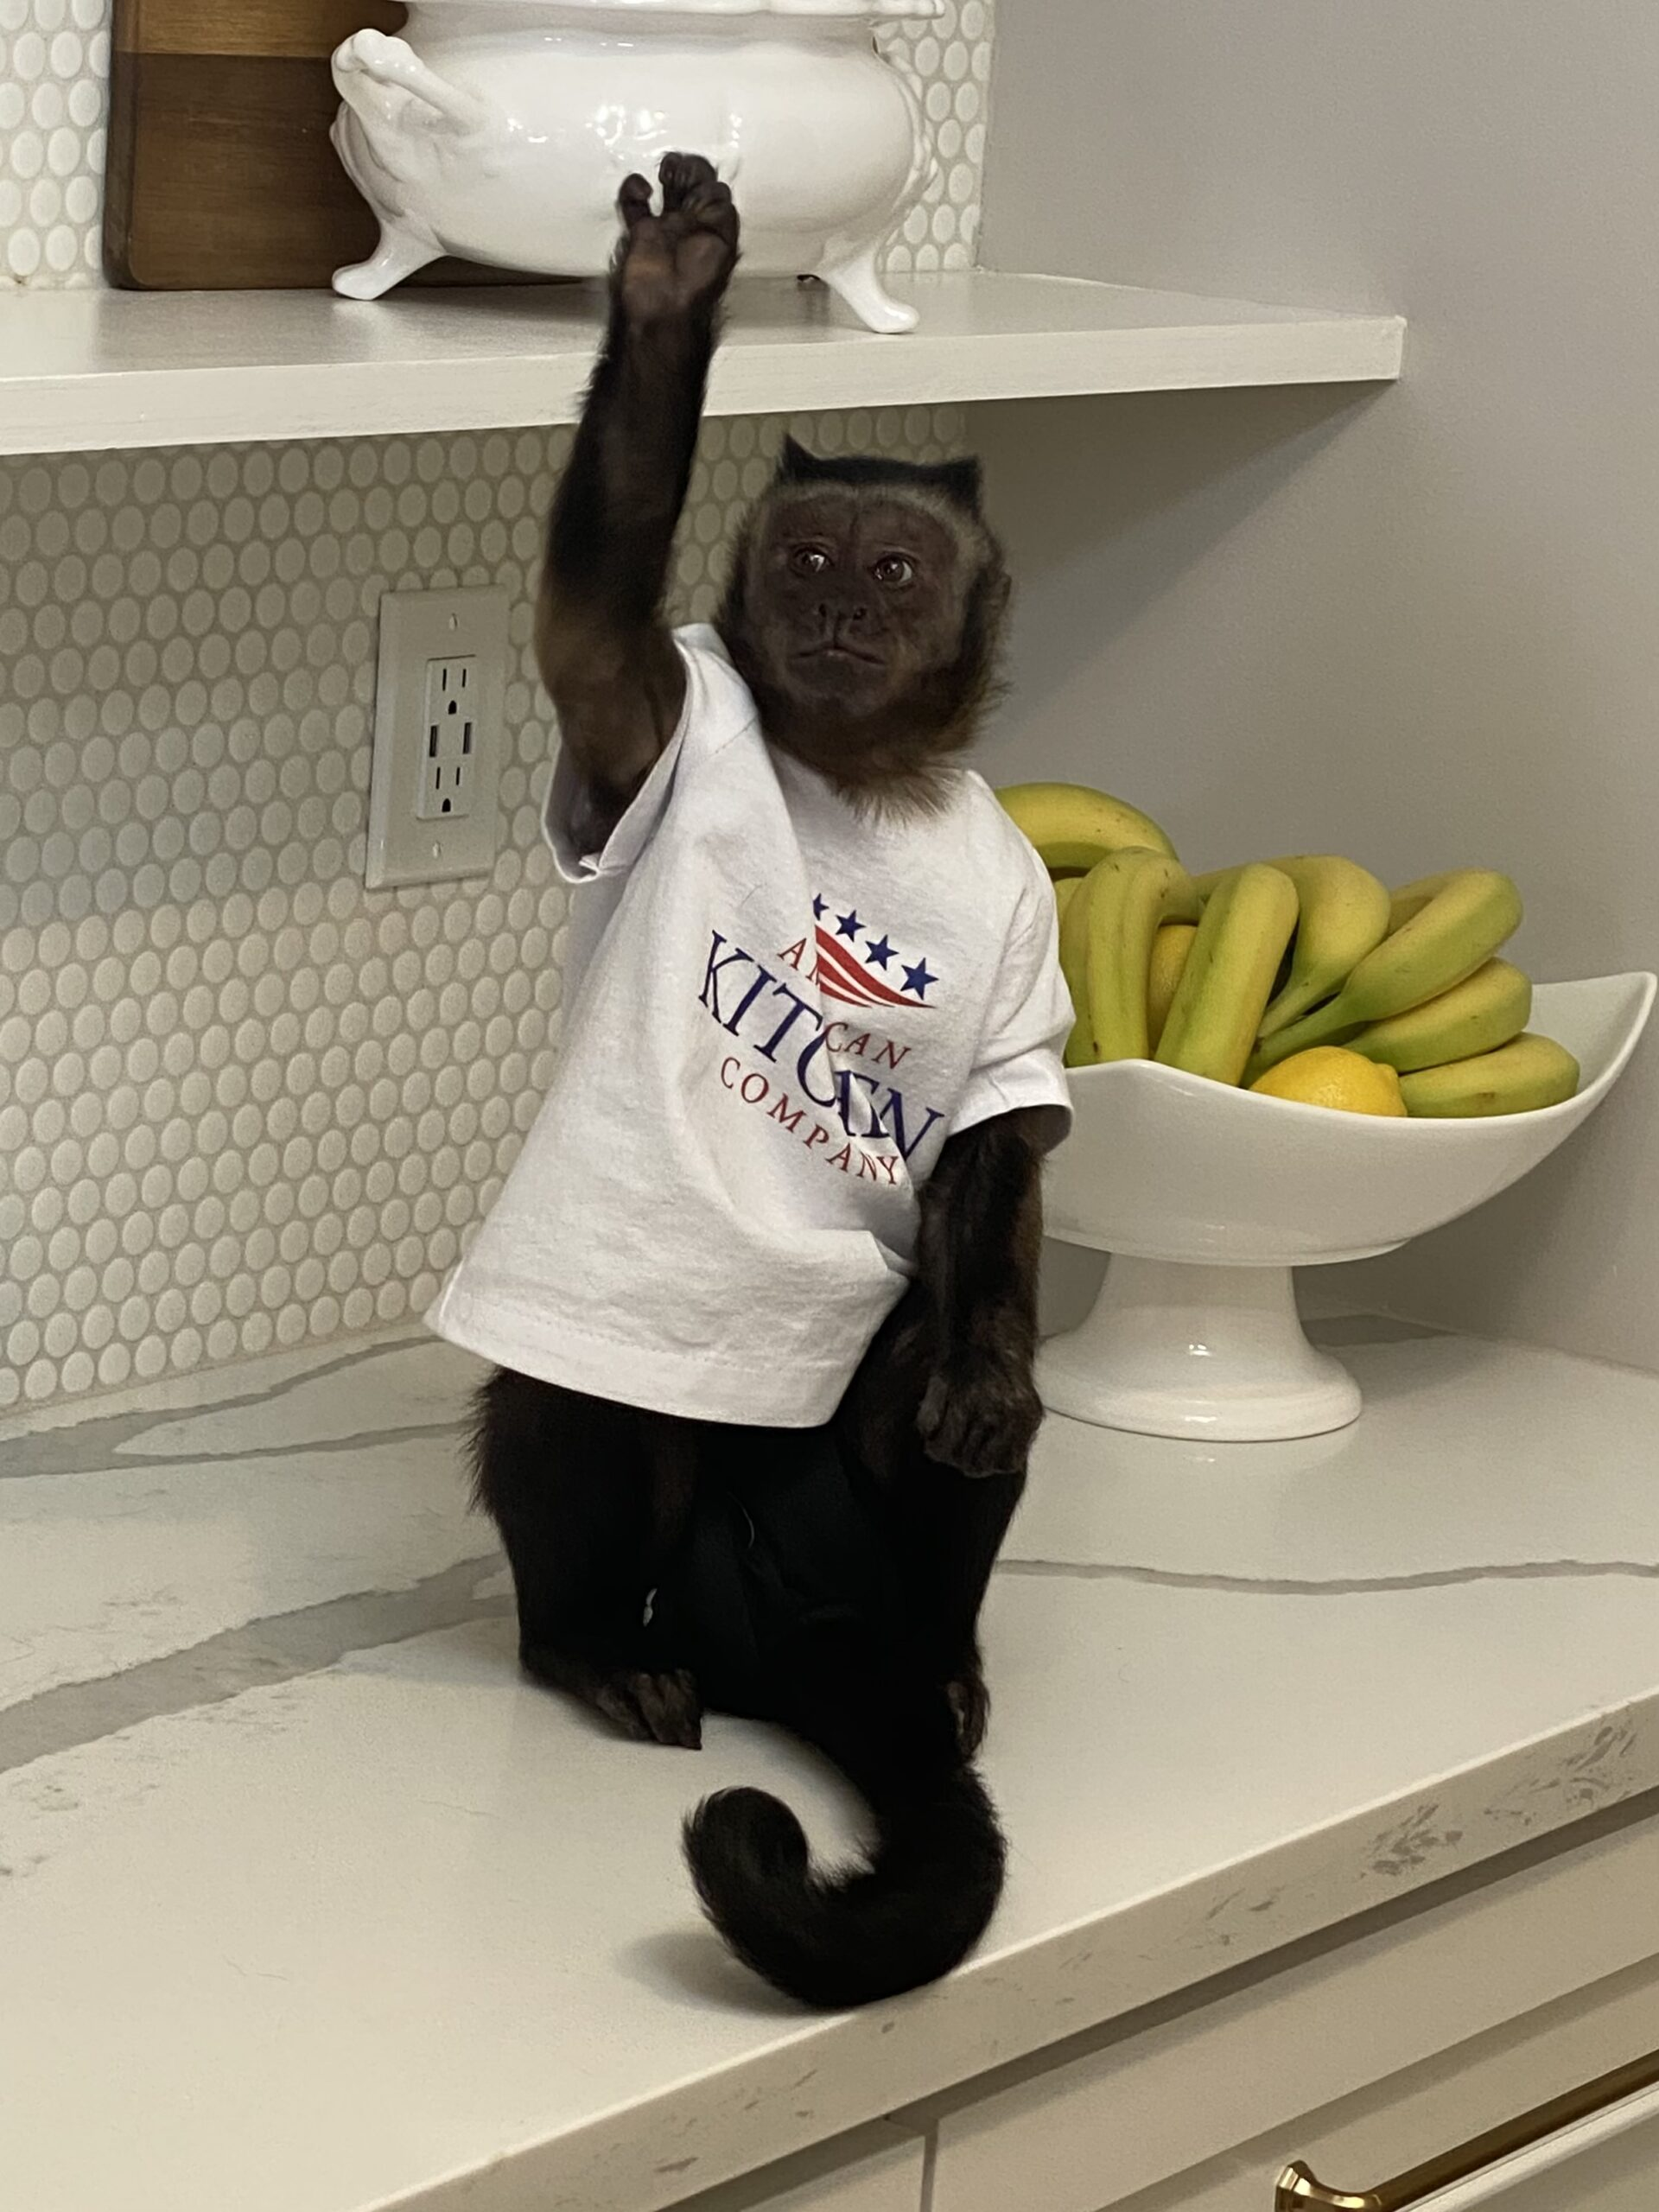 Pay in peanuts, you get monkeys